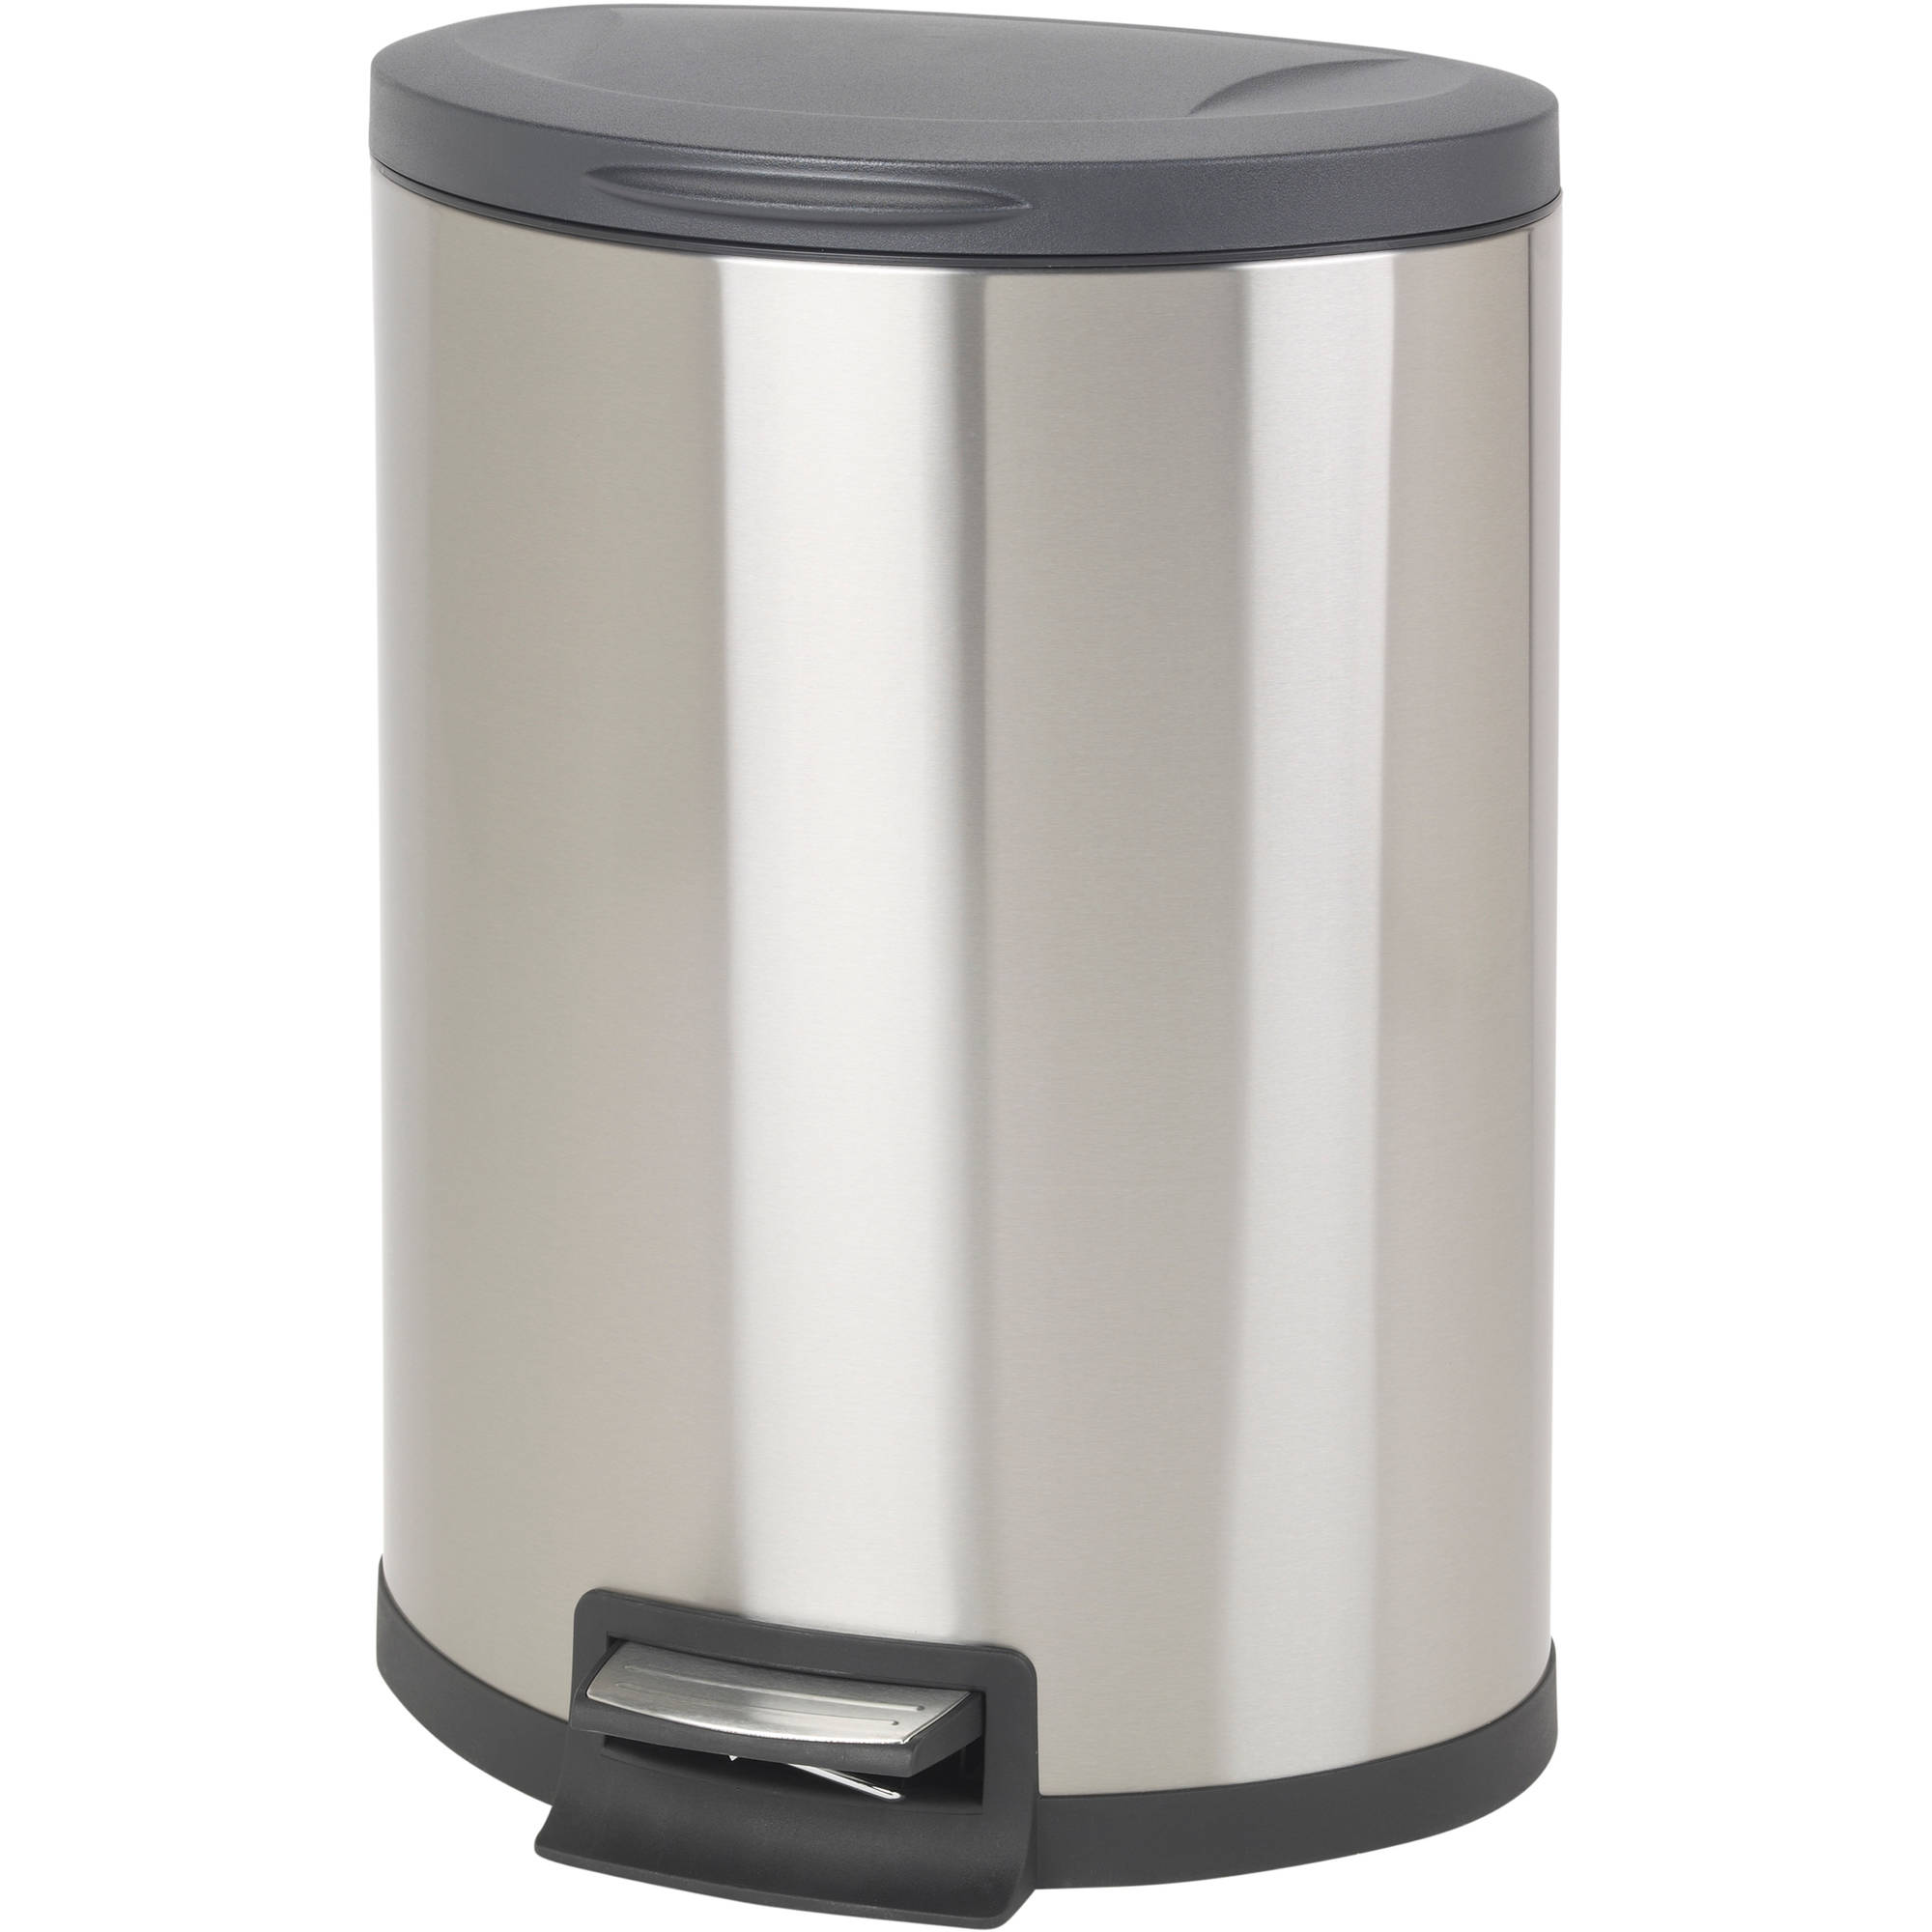 Better Homes & Garden 11.8 Gallon Semi Round Stainless Steel Waste Can